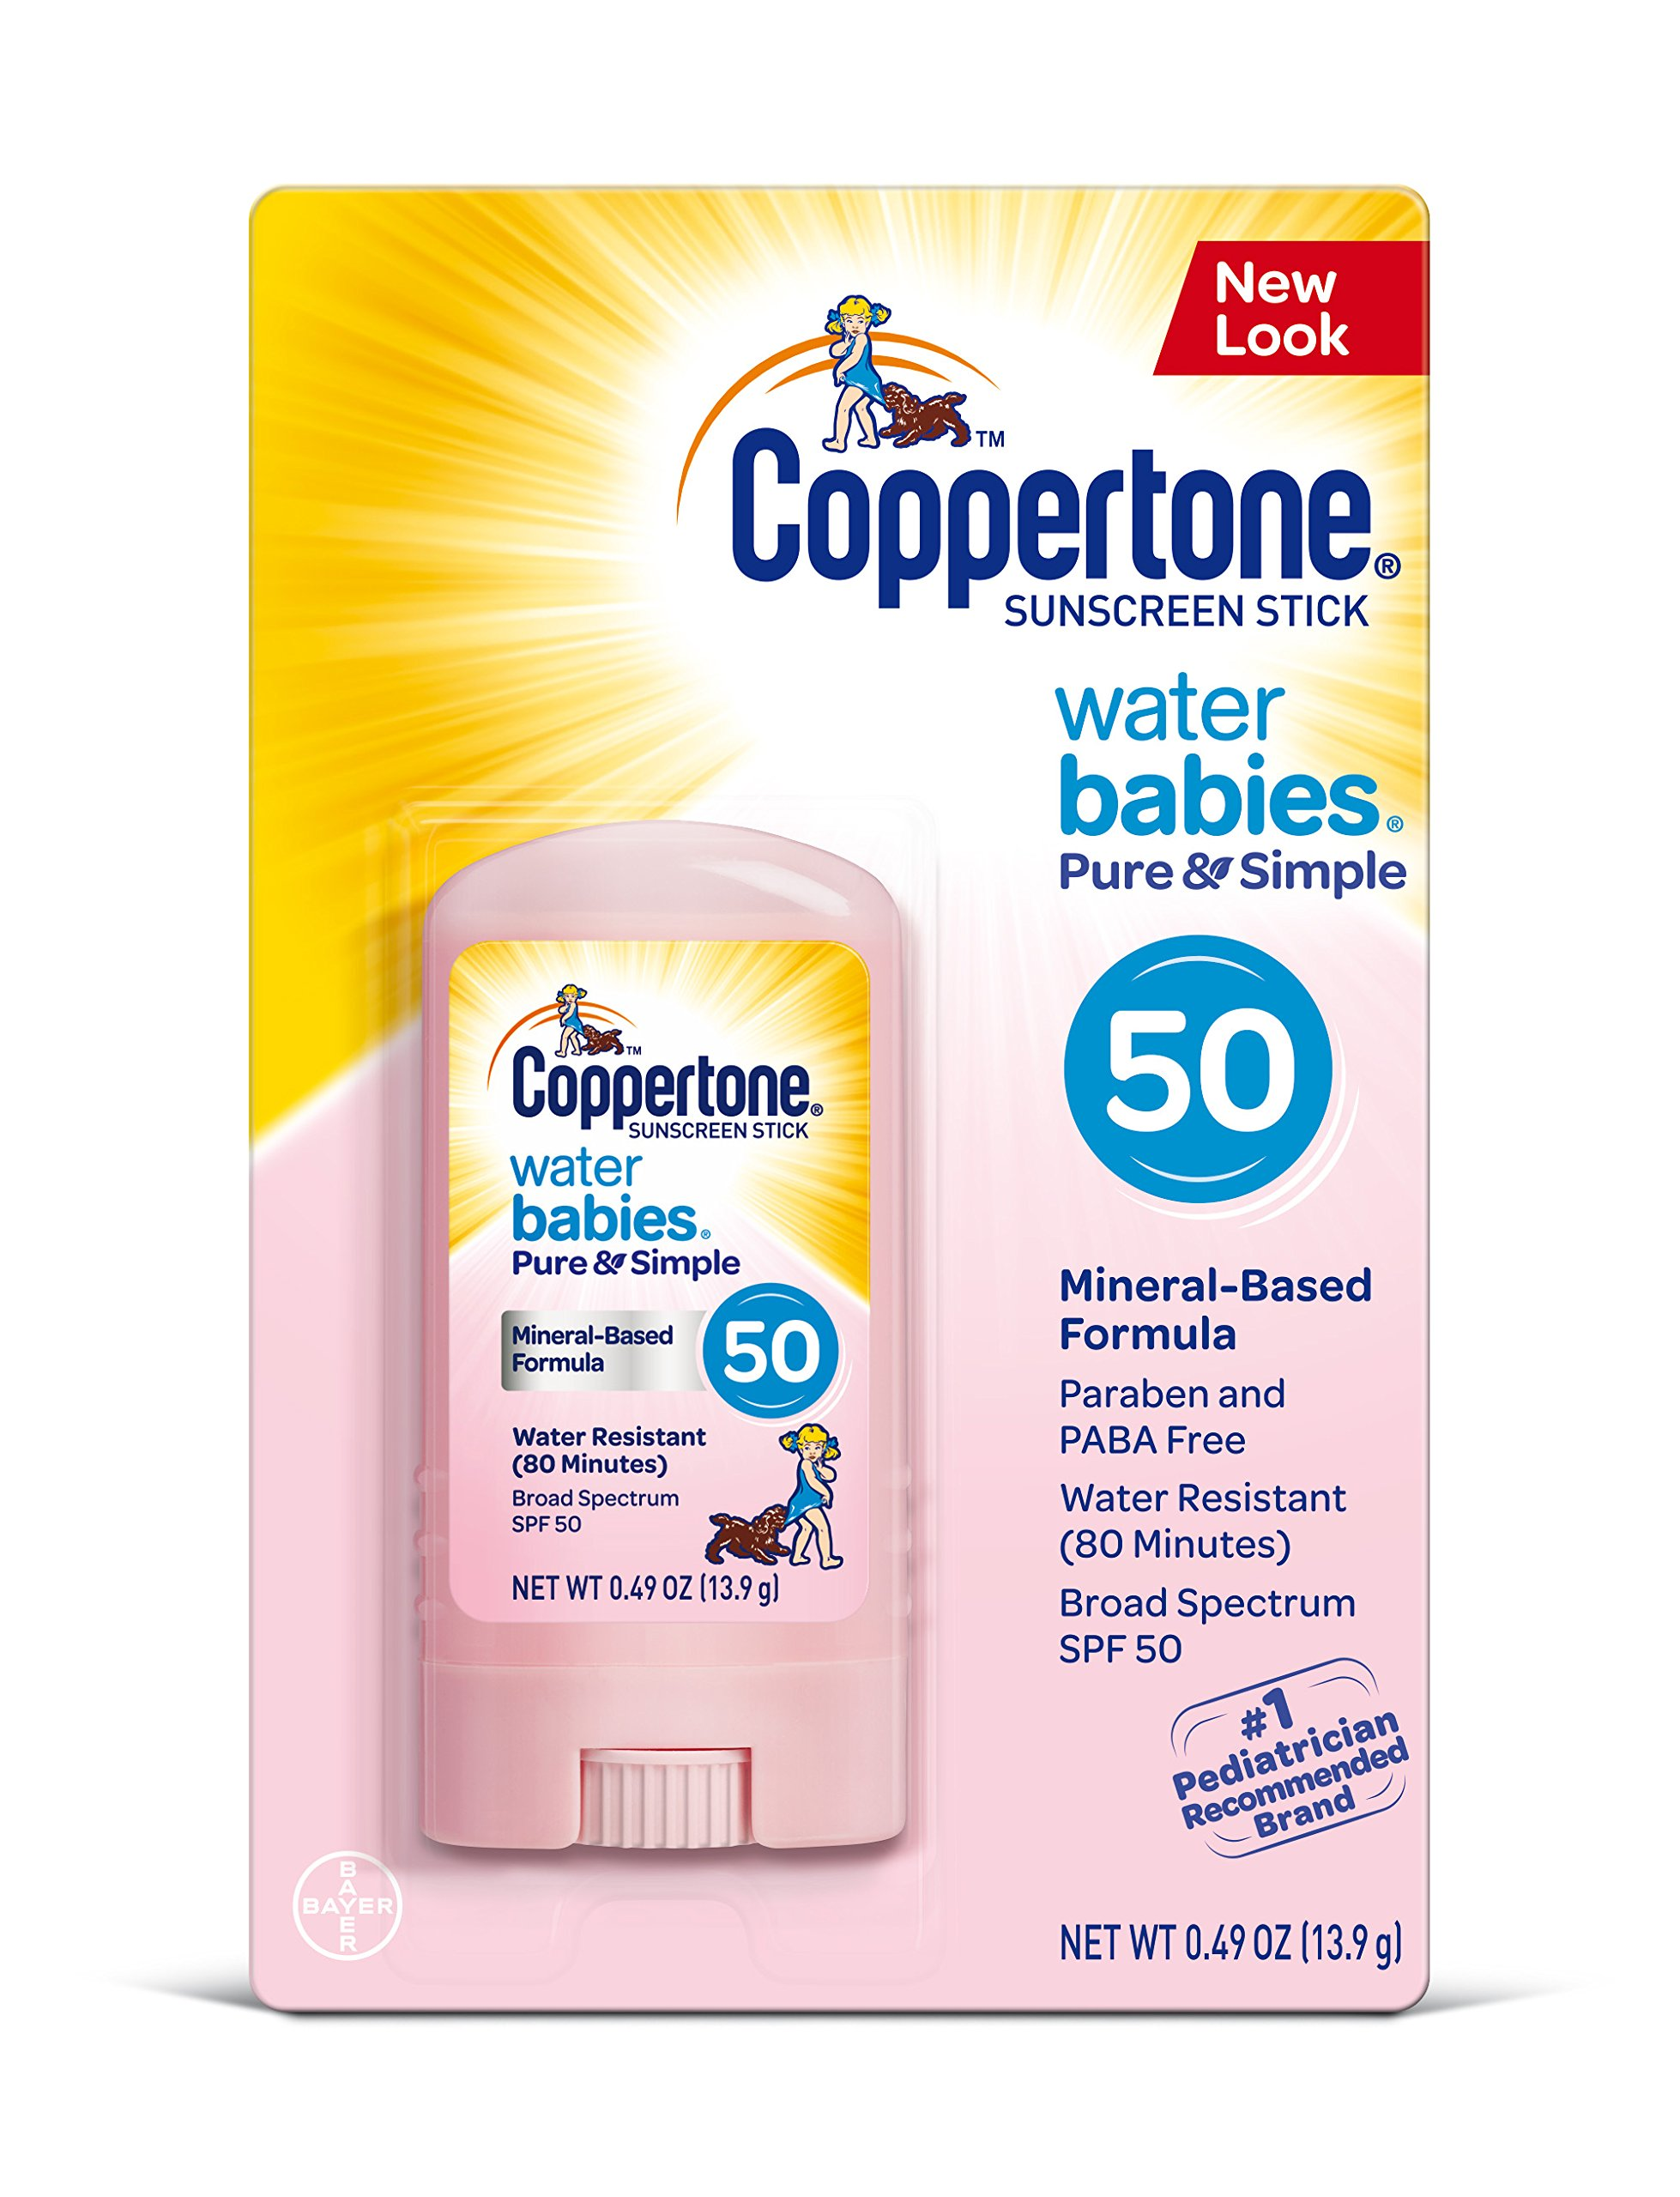 Coppertone WaterBABIES Sunscreen Pure & Simple Stick Broad Spectrum SPF 50, .5 Ounces by Coppertone